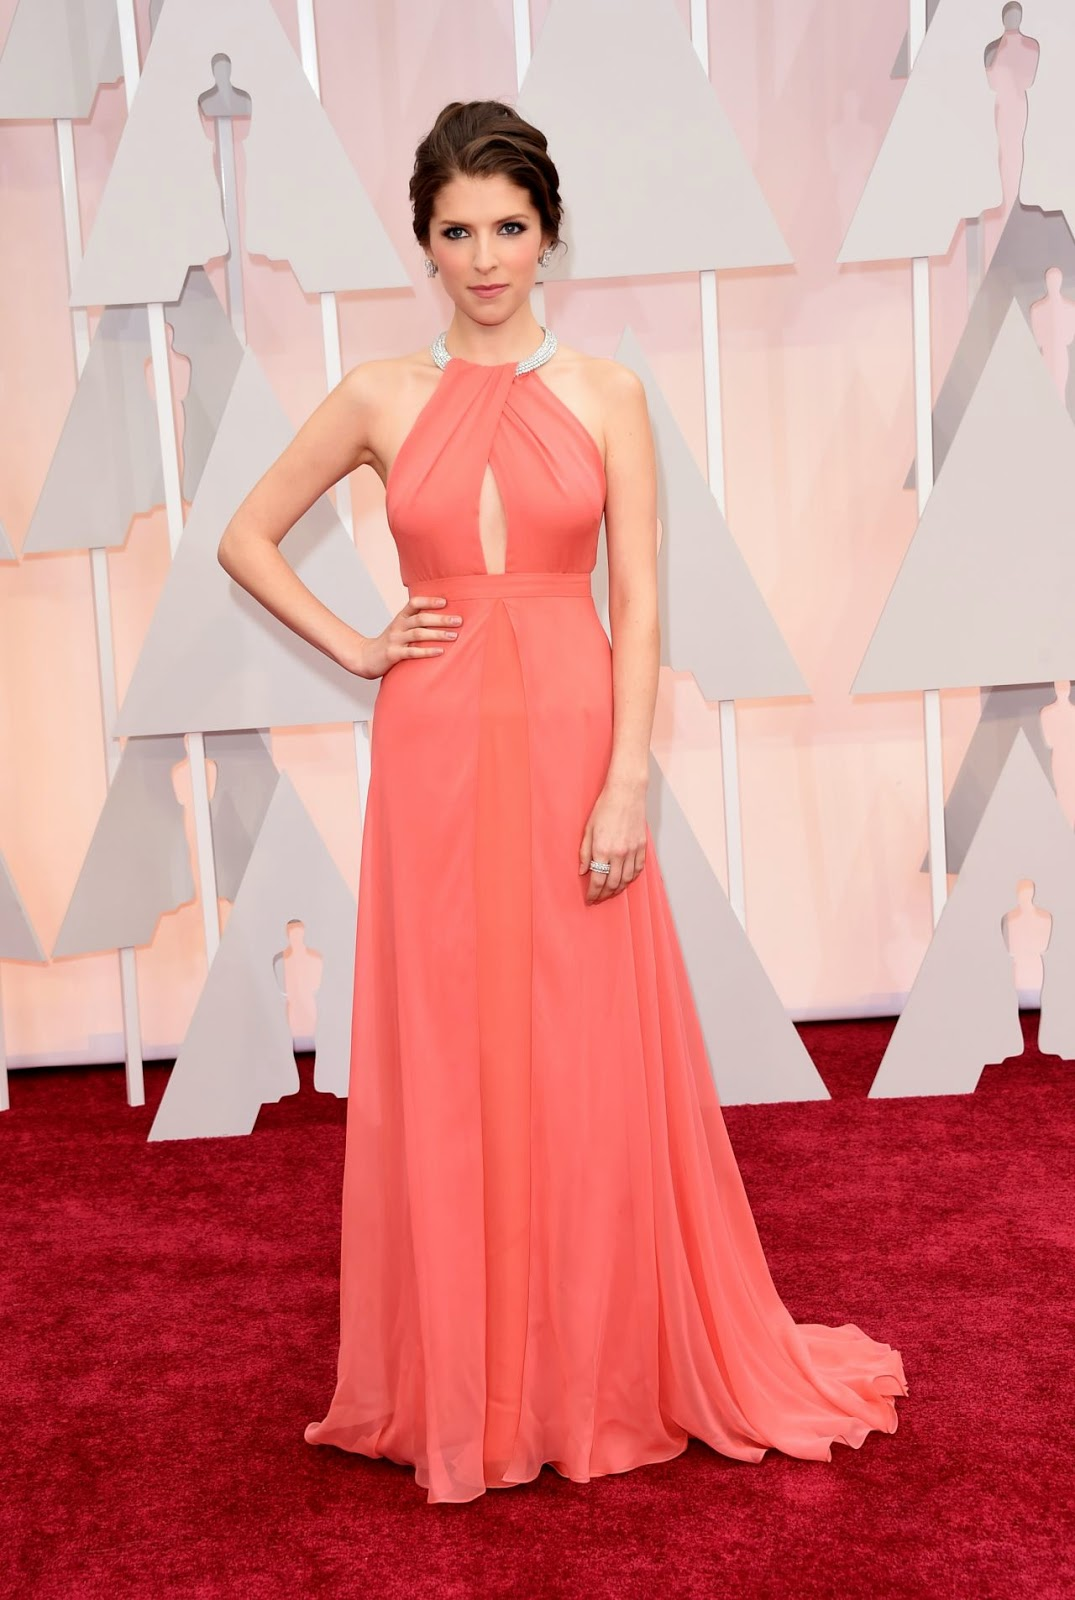 Anna Kendrick Wears A Beautiful Peach Gown At The 2015